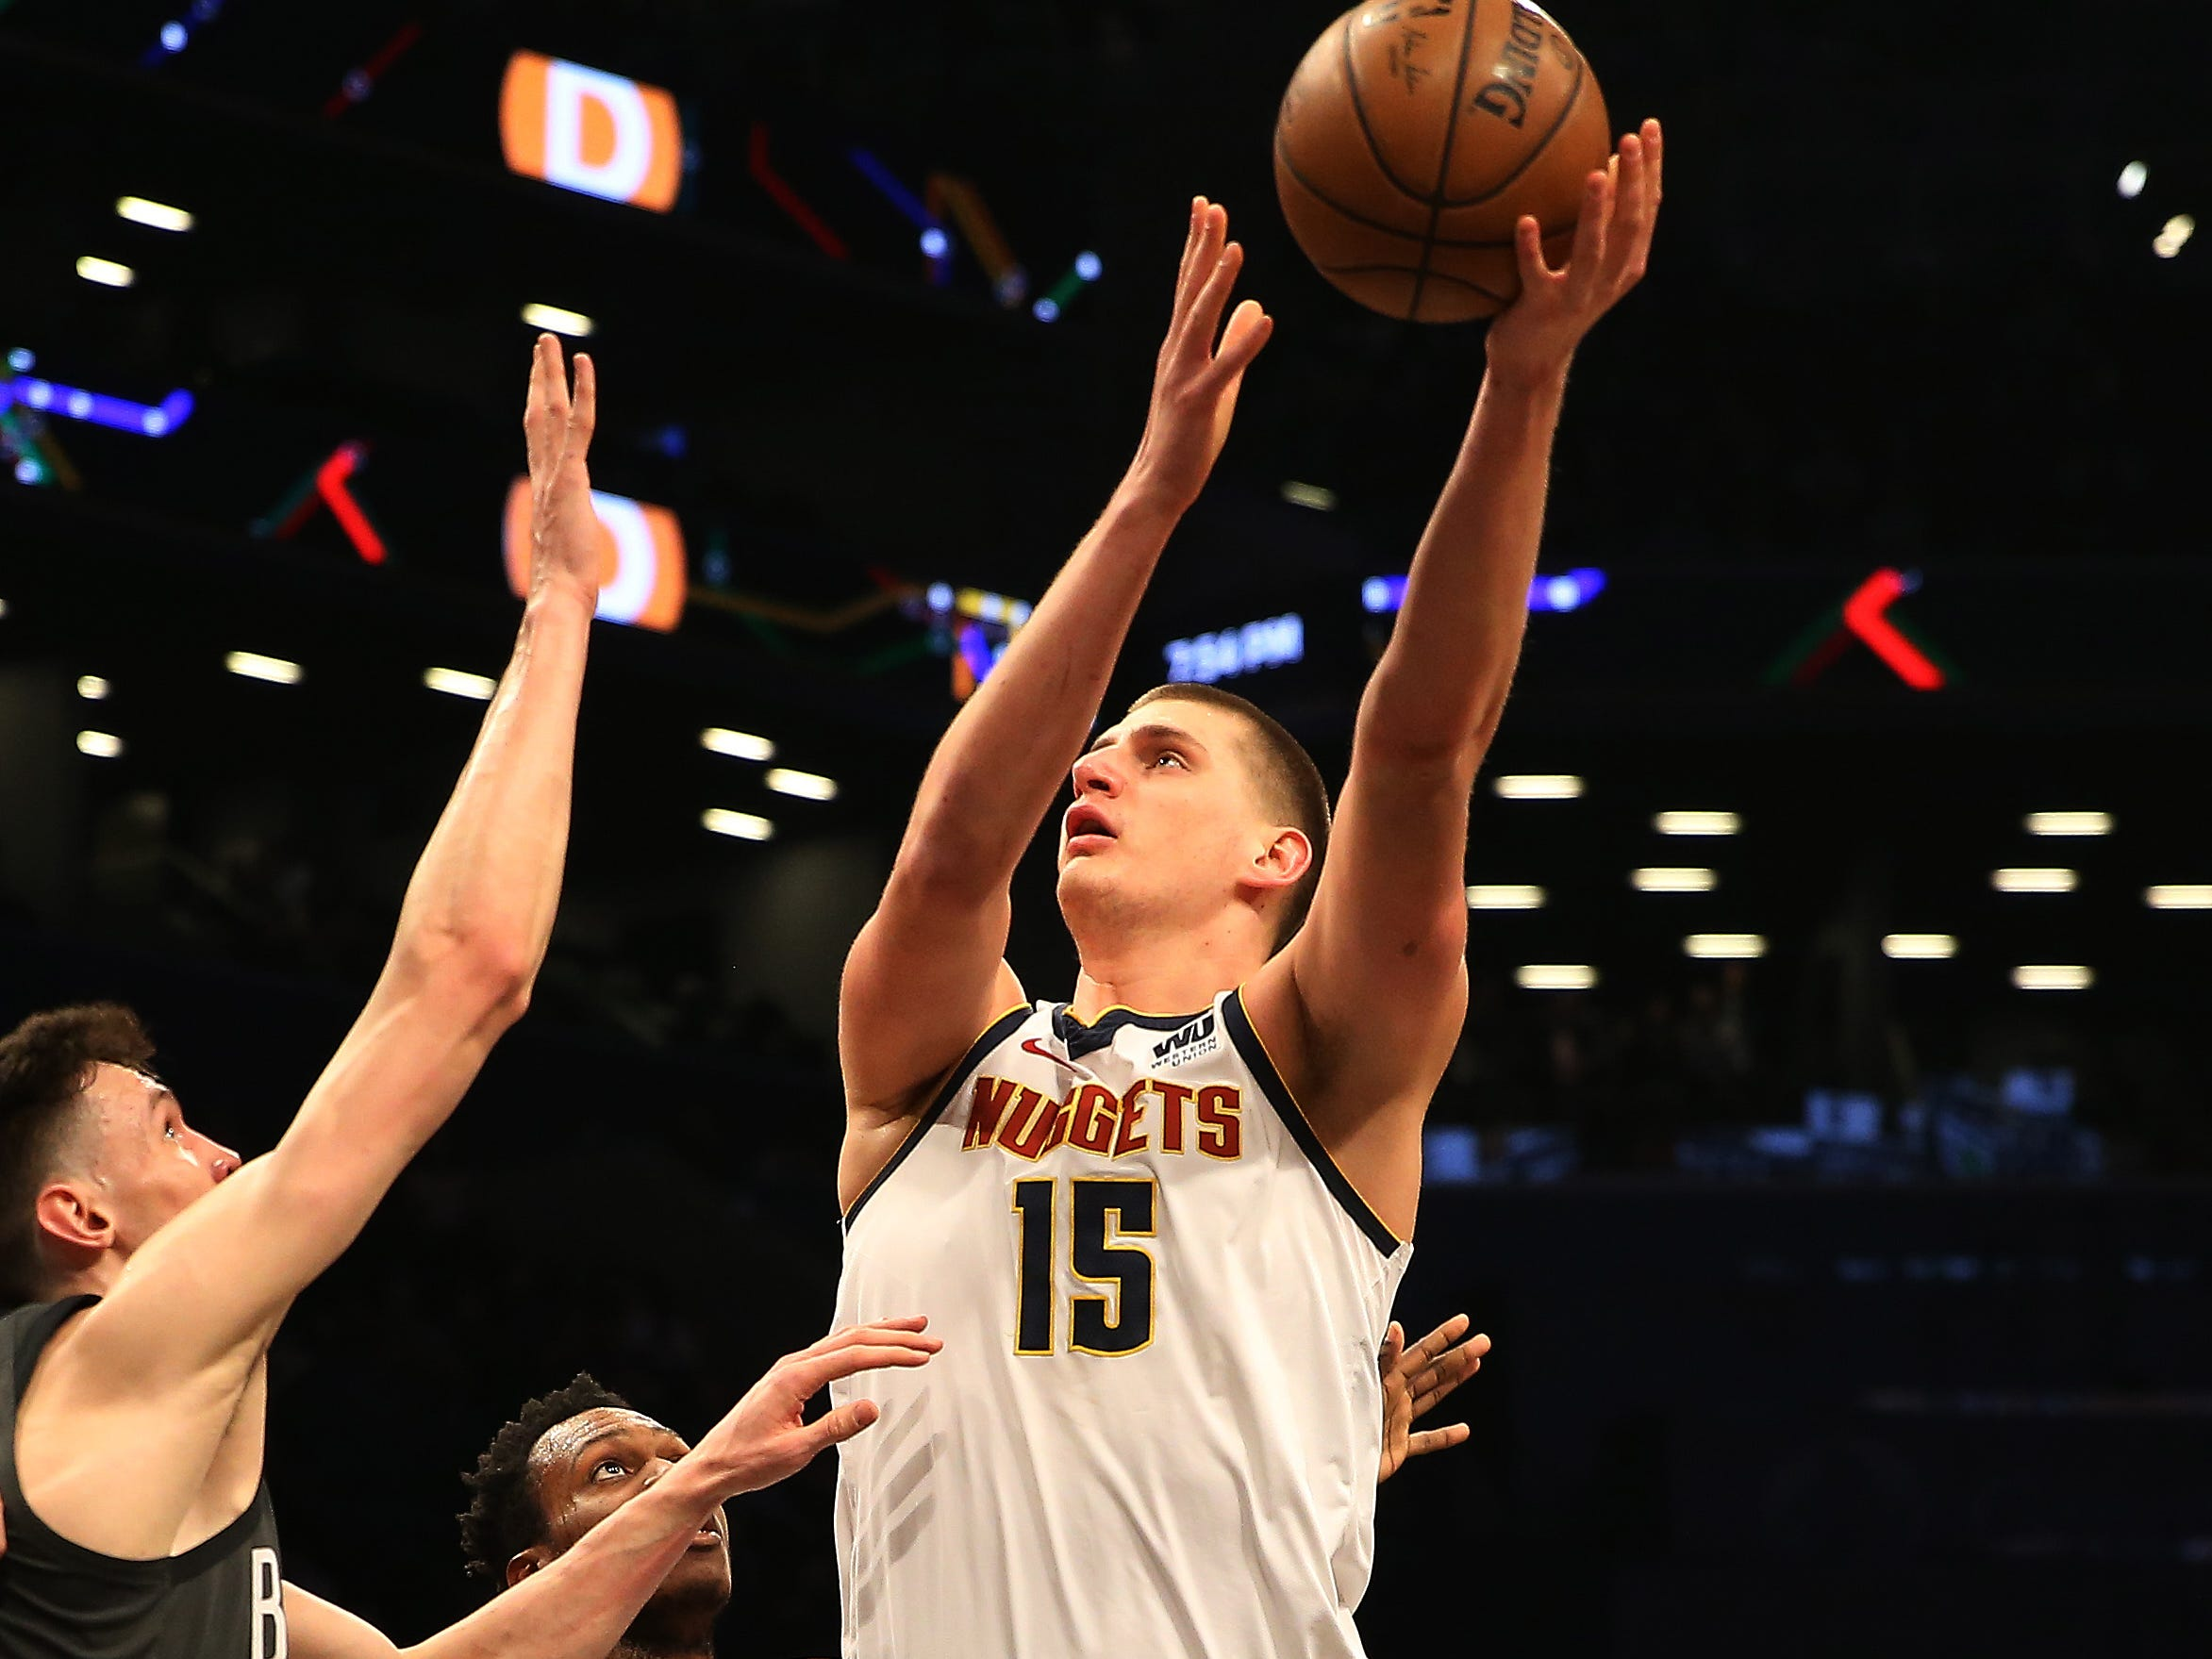 74. Nikola Jokic, Nuggets (Feb. 6): 25 points, 14 rebounds, 10 assists in 135-130 loss to Nets (10th of season).